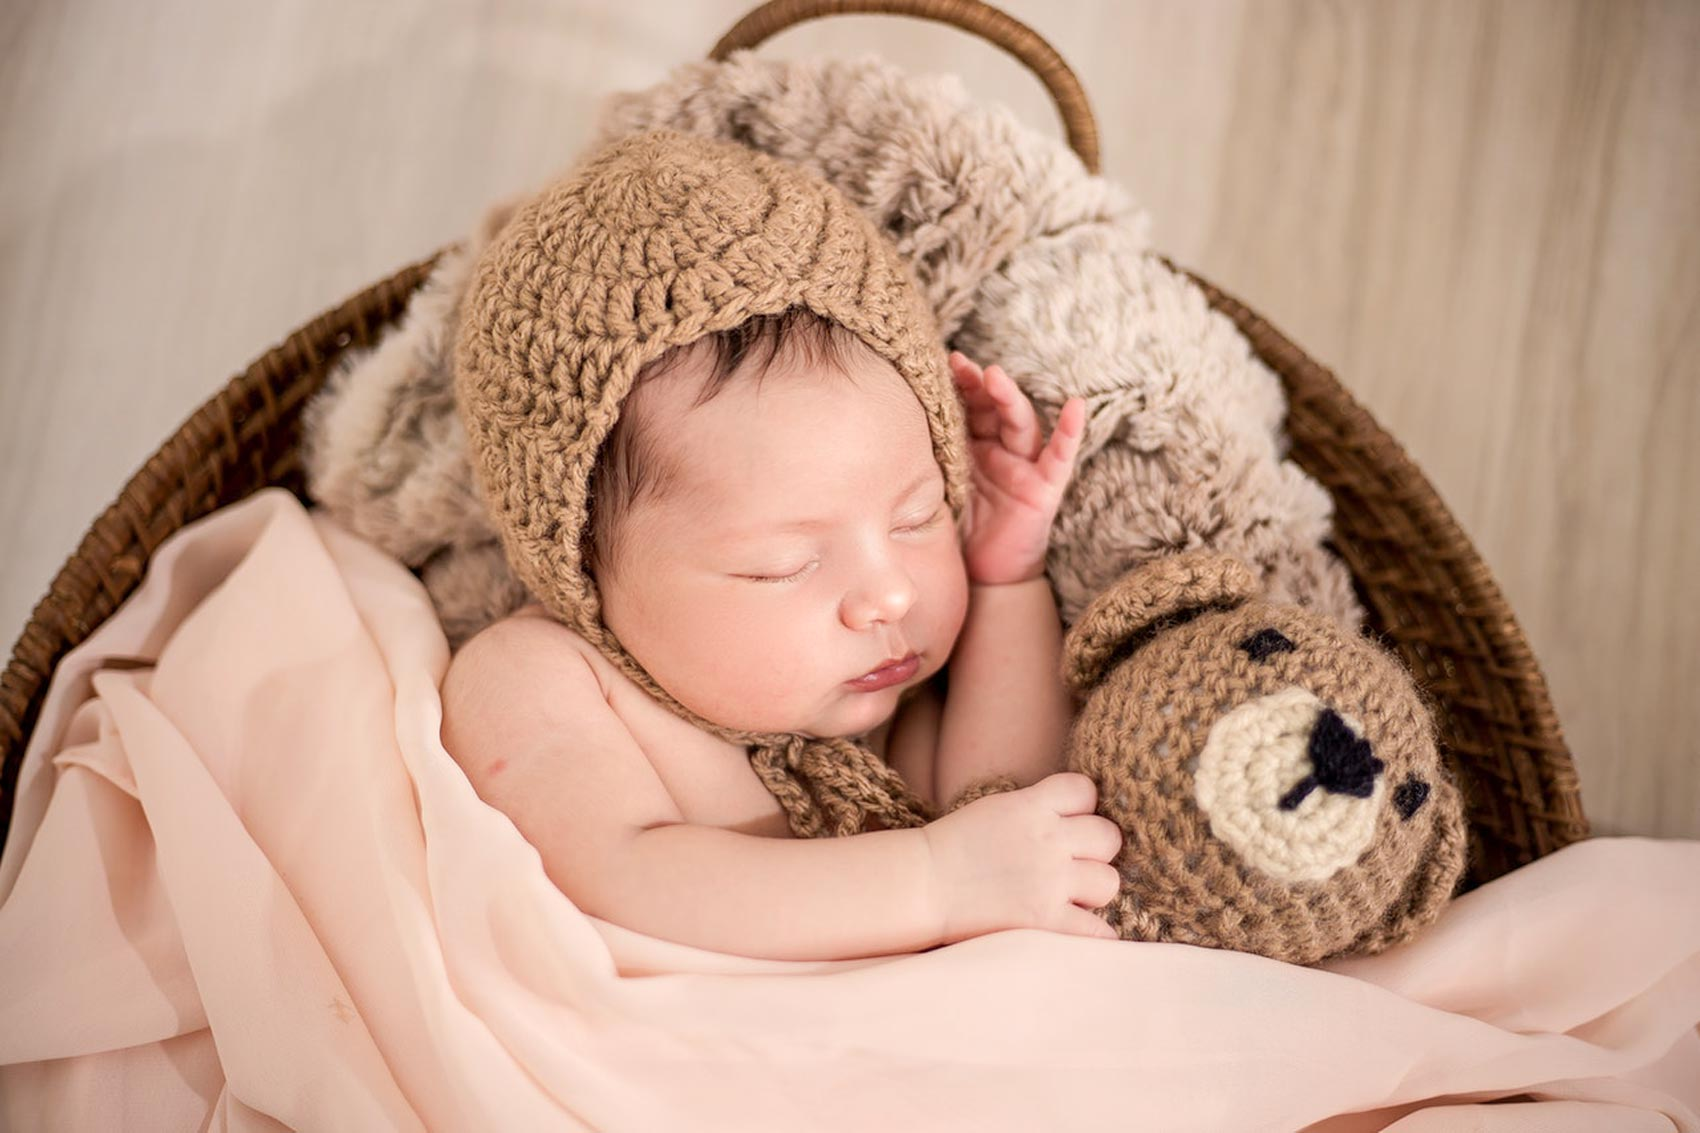 Image of a newborn baby with a hat on sleeping in a basket with a stuffed animal bear